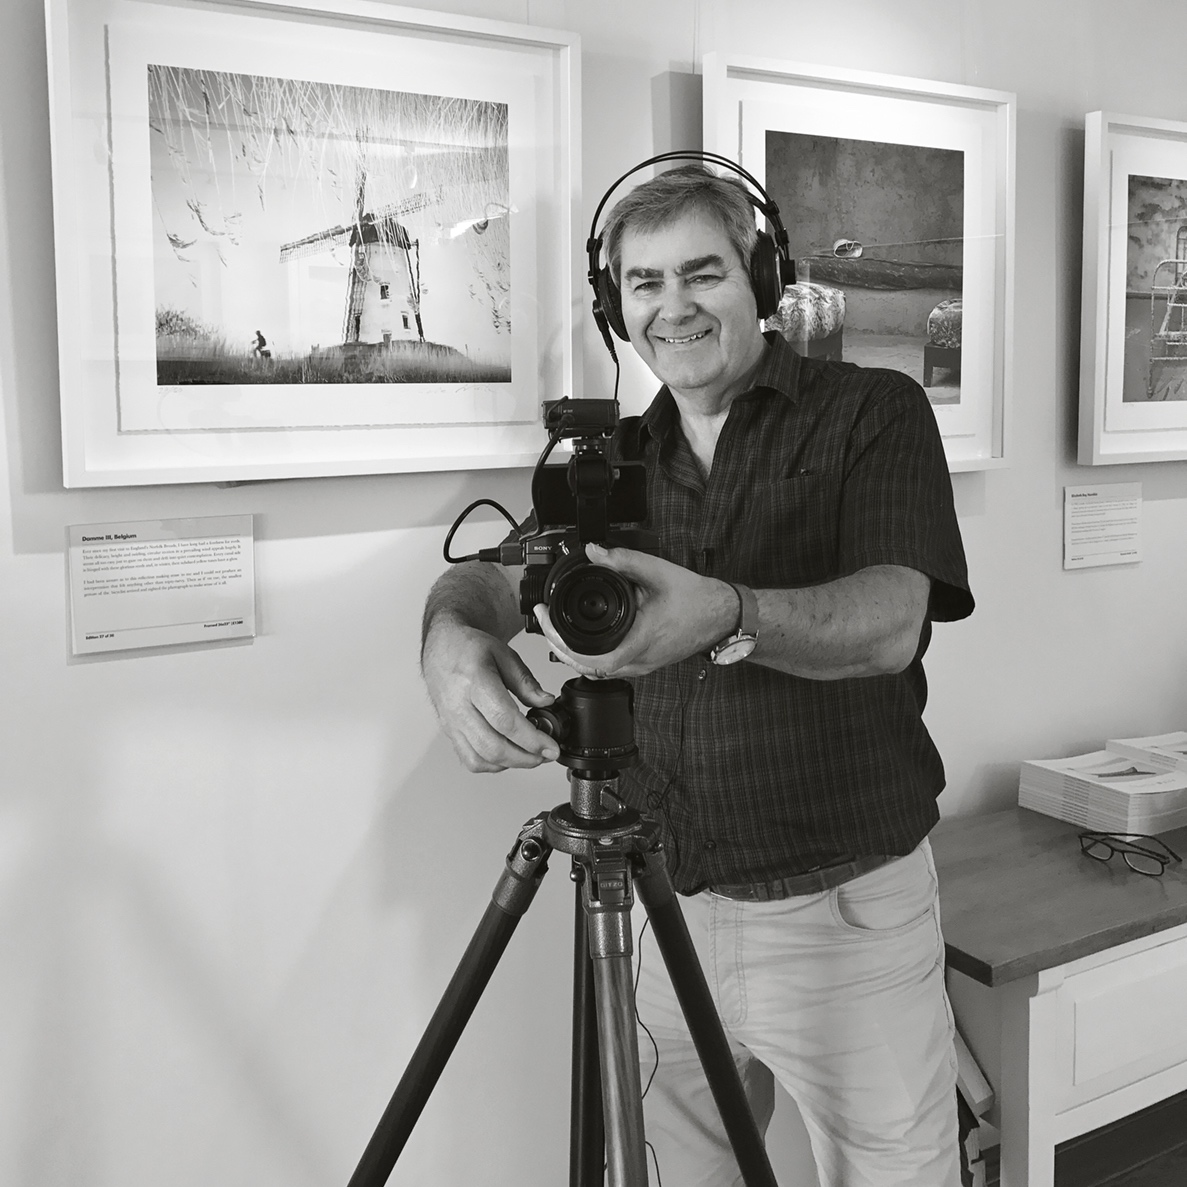 """John Langridge - TUTORWith over thirty years as a successful commercial photographer, John Langridge's thriving studio in West Sussex specialises in portraiture and wedding photography and in recent years has expanded to offer film production for the business sector. John also has a real passion for the great outdoors and landscape photography and it is his clever use of lighting evident in all of his work that he is best known for.""""I started in the 1980s with a Hasselblad film camera and I'm excited to teach with Coast & Capture because fundamentally the principles of photography remain unchanged today. It's about light, colour and composition – and above all having some fun with your photography and staying true to your creative vision""""John will be sharing his creative and technical expertise on our 'Capture To Print' Panoramic Photography Workshop in Autumn 2019."""